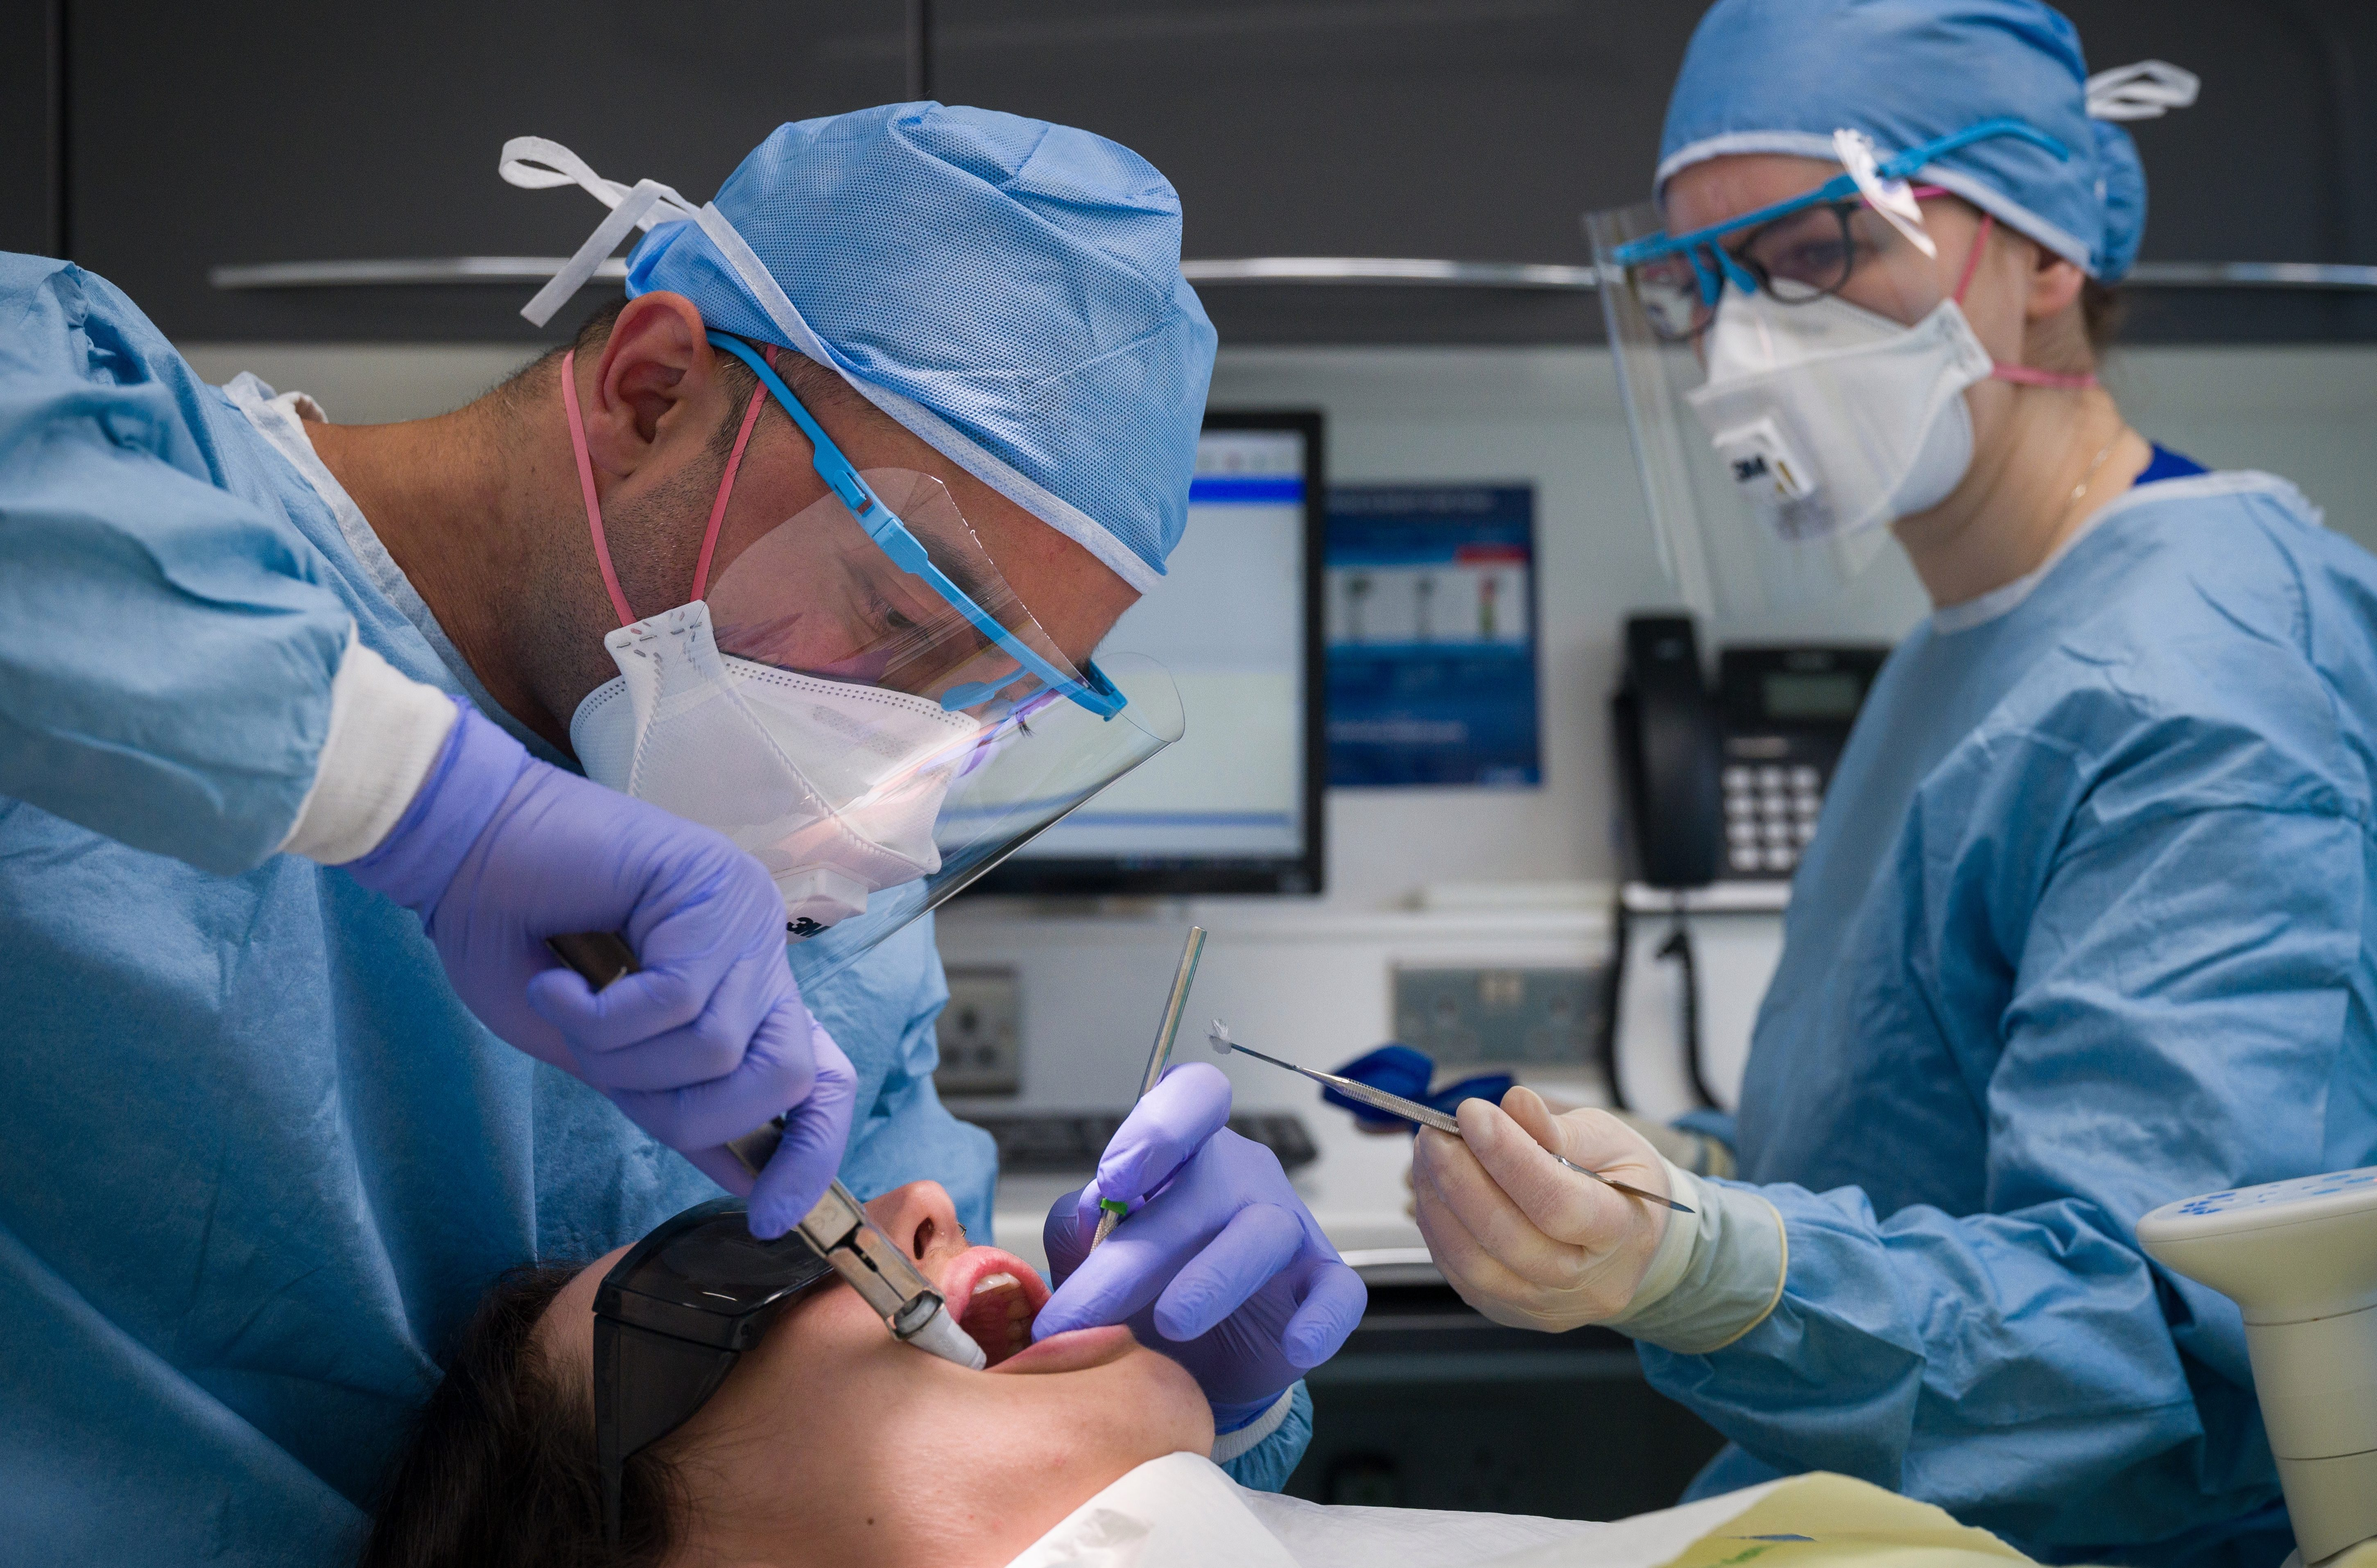 Dentists carry out a procedure on a patient in one of the six surgery rooms at East Village dental practice in London today